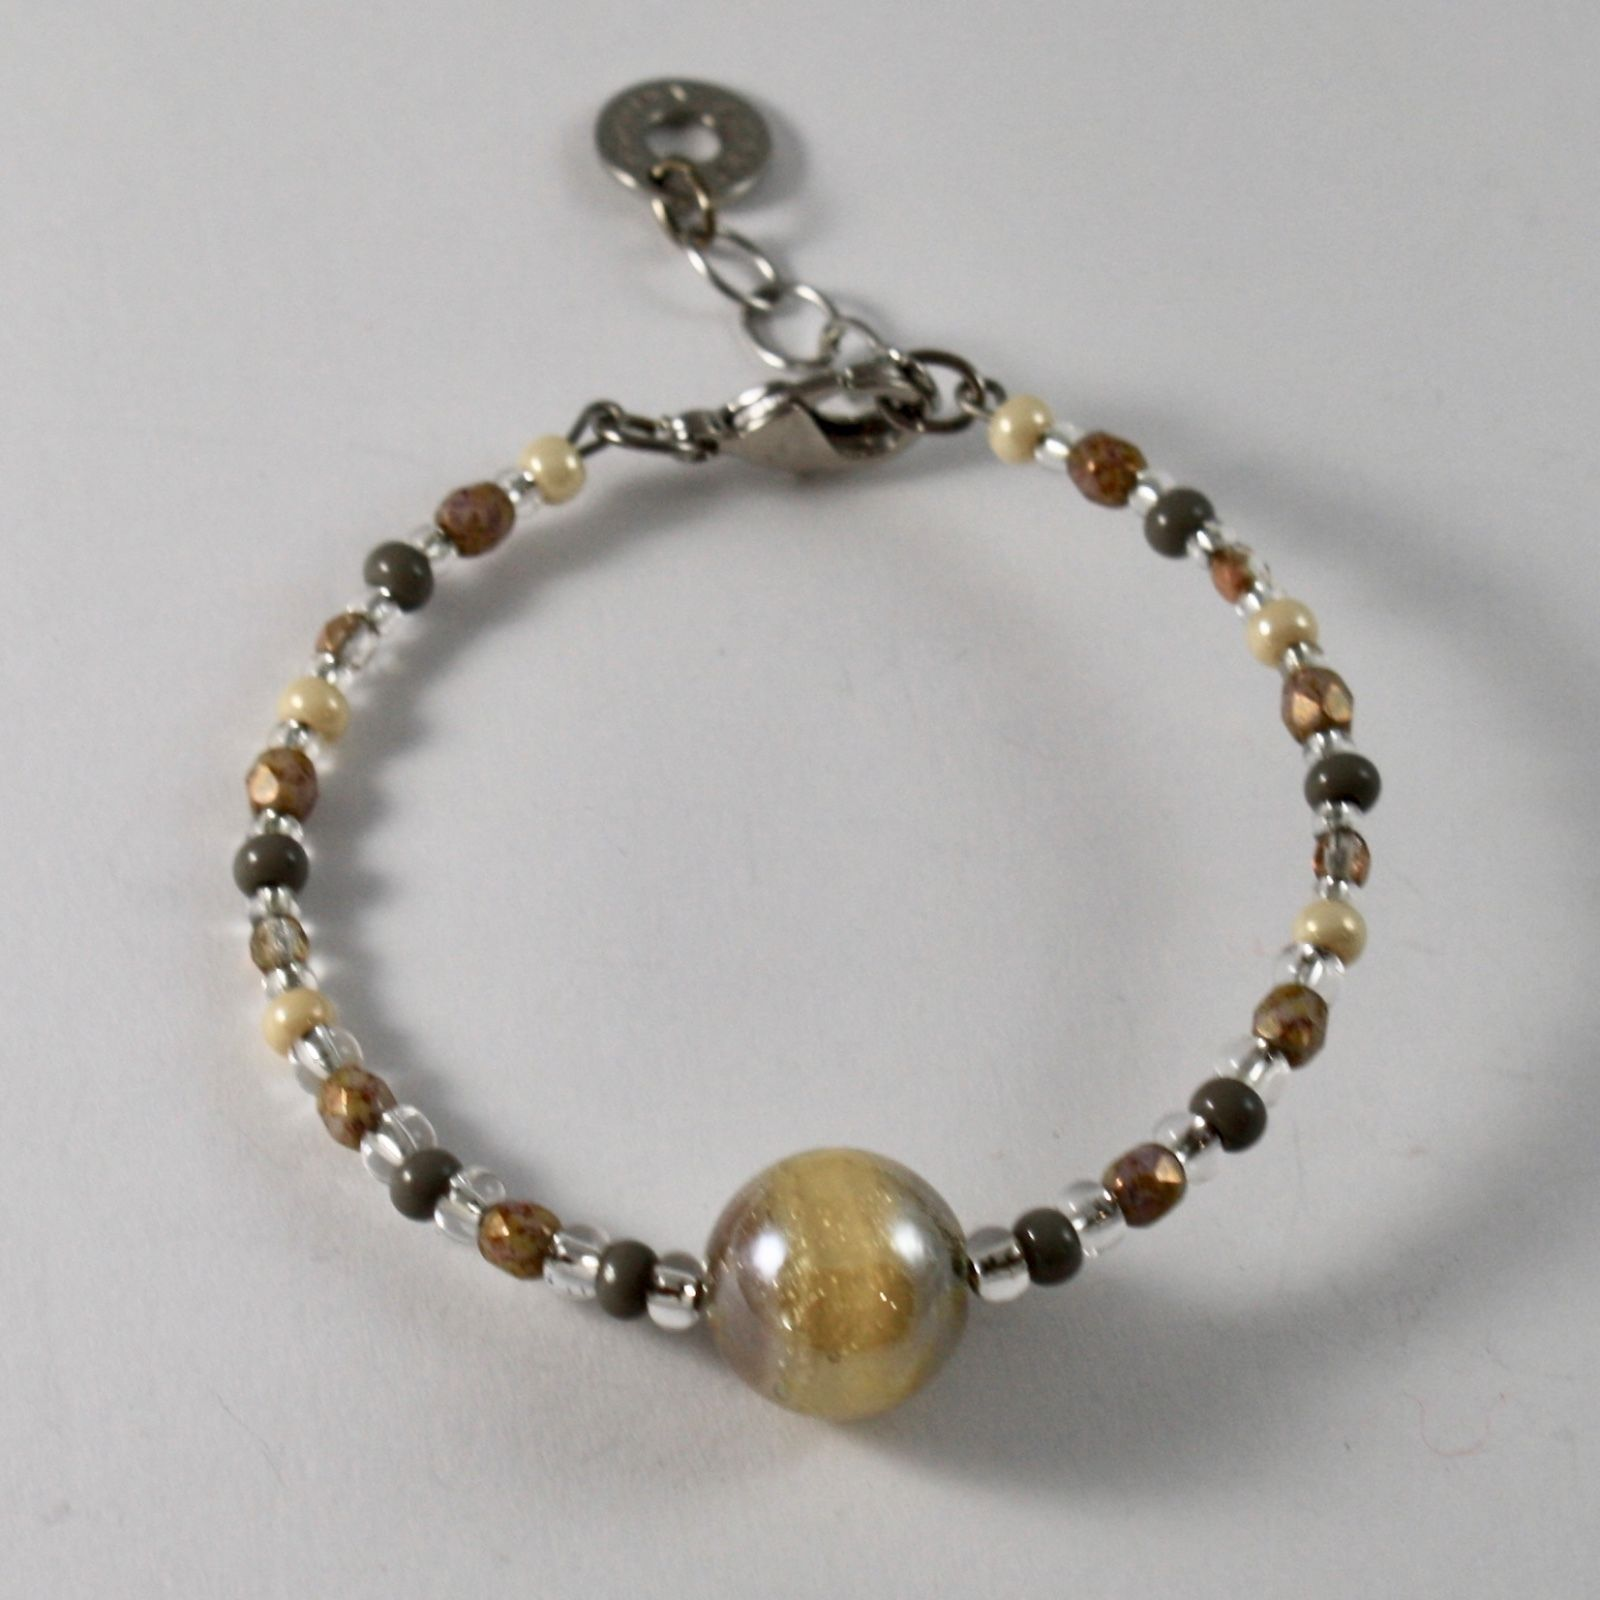 ANTICA MURRINA VENEZIA BRACELET WITH YELLOW BROWN MURANO GLASS BALL, 7.5 INCHES